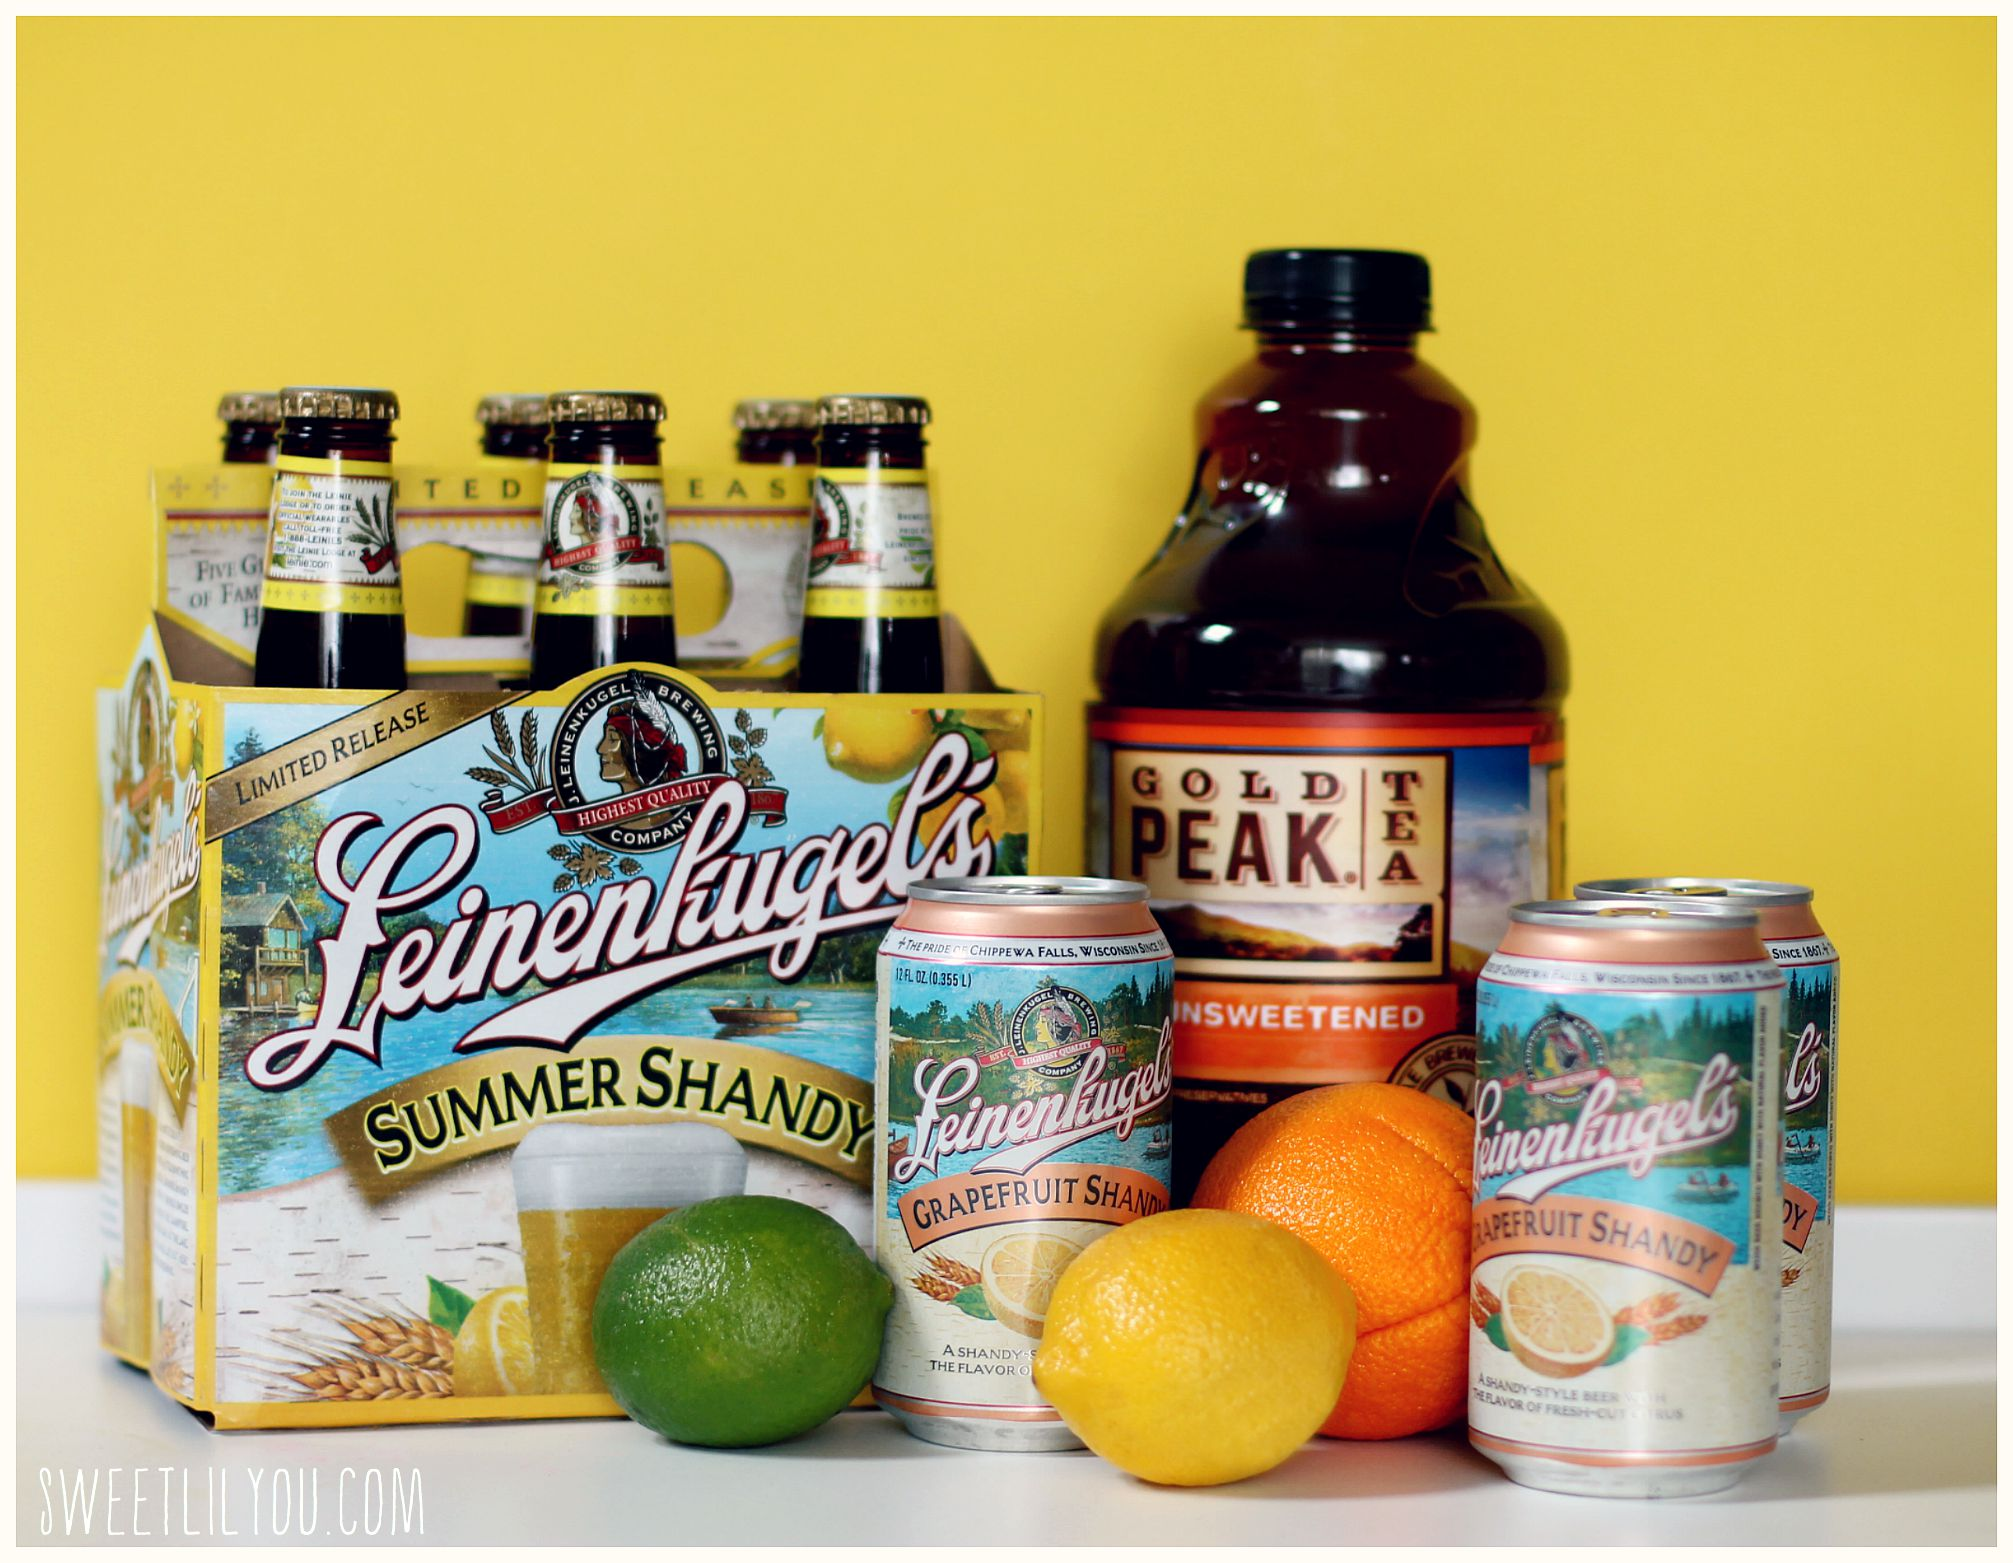 Where to buy leinenkugel s grapefruit shandy - Leinenkugel S Shandy And Gold Peak Tea I M Not Really A Wine Drinker I M More Of A Beer Whiskey Girl But I Do Love Sangria I Thought It Would Be Fun To